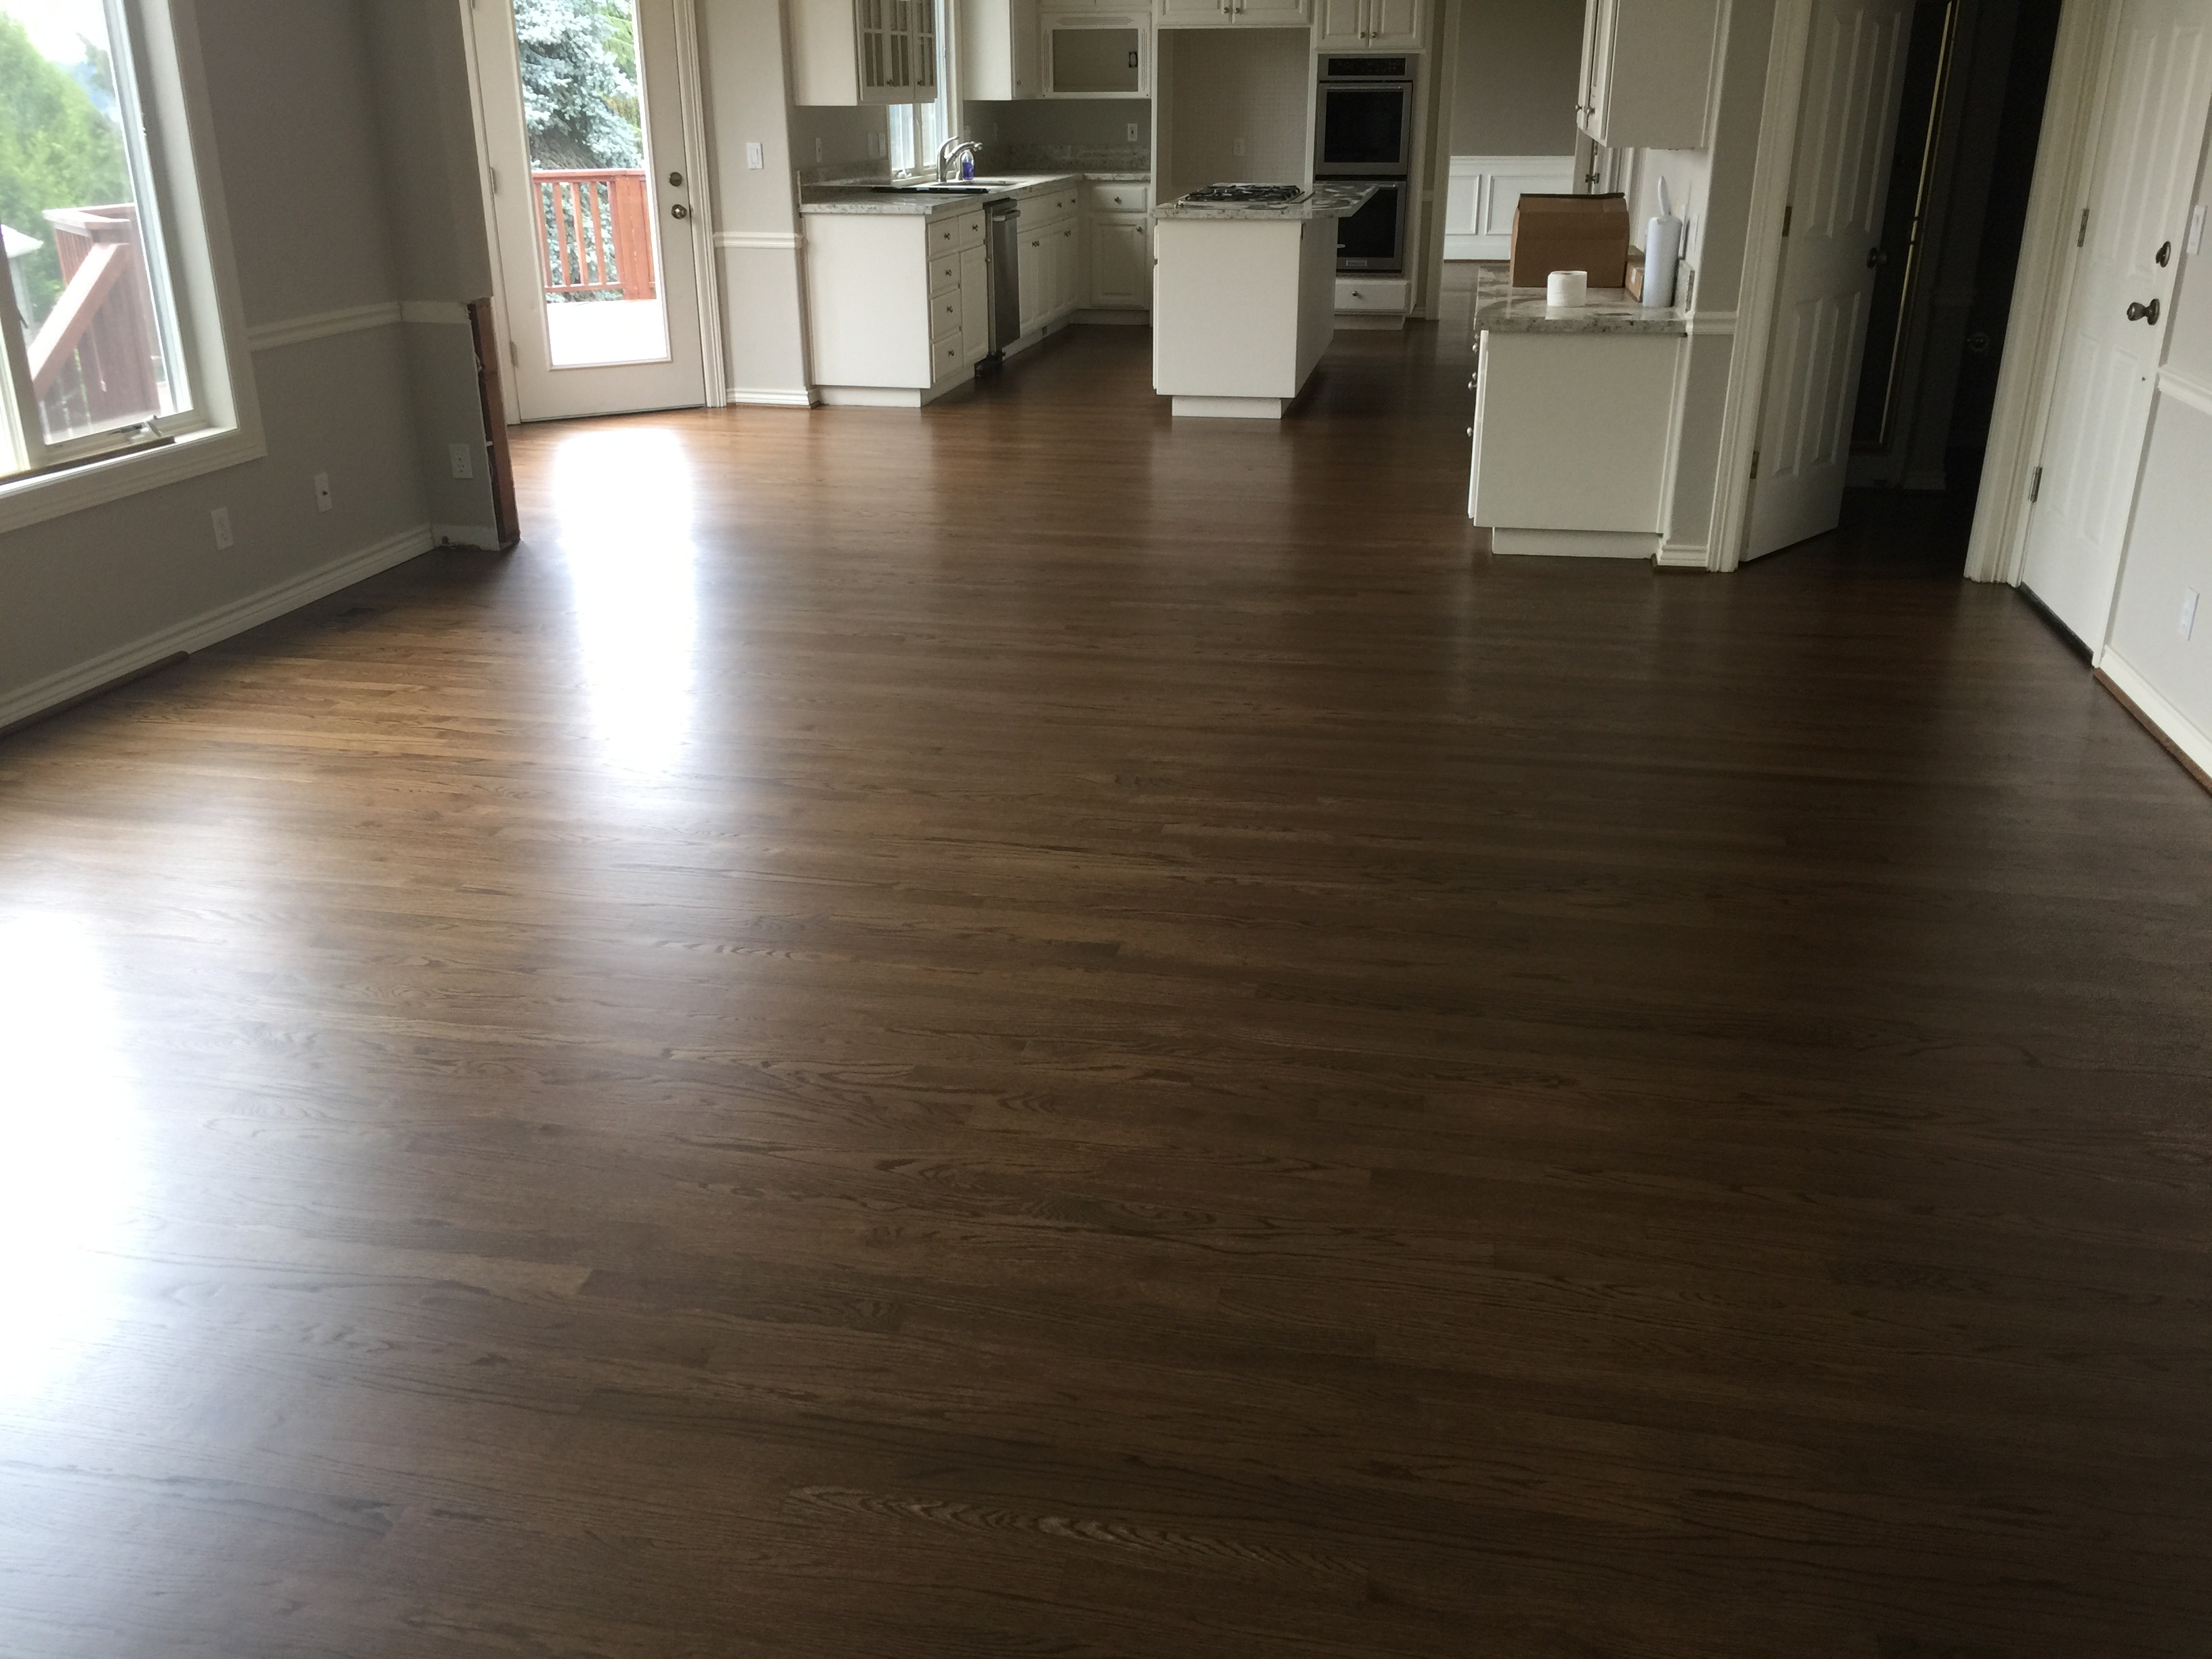 eco hardwood floors coupons near me in vancouver 8coupons